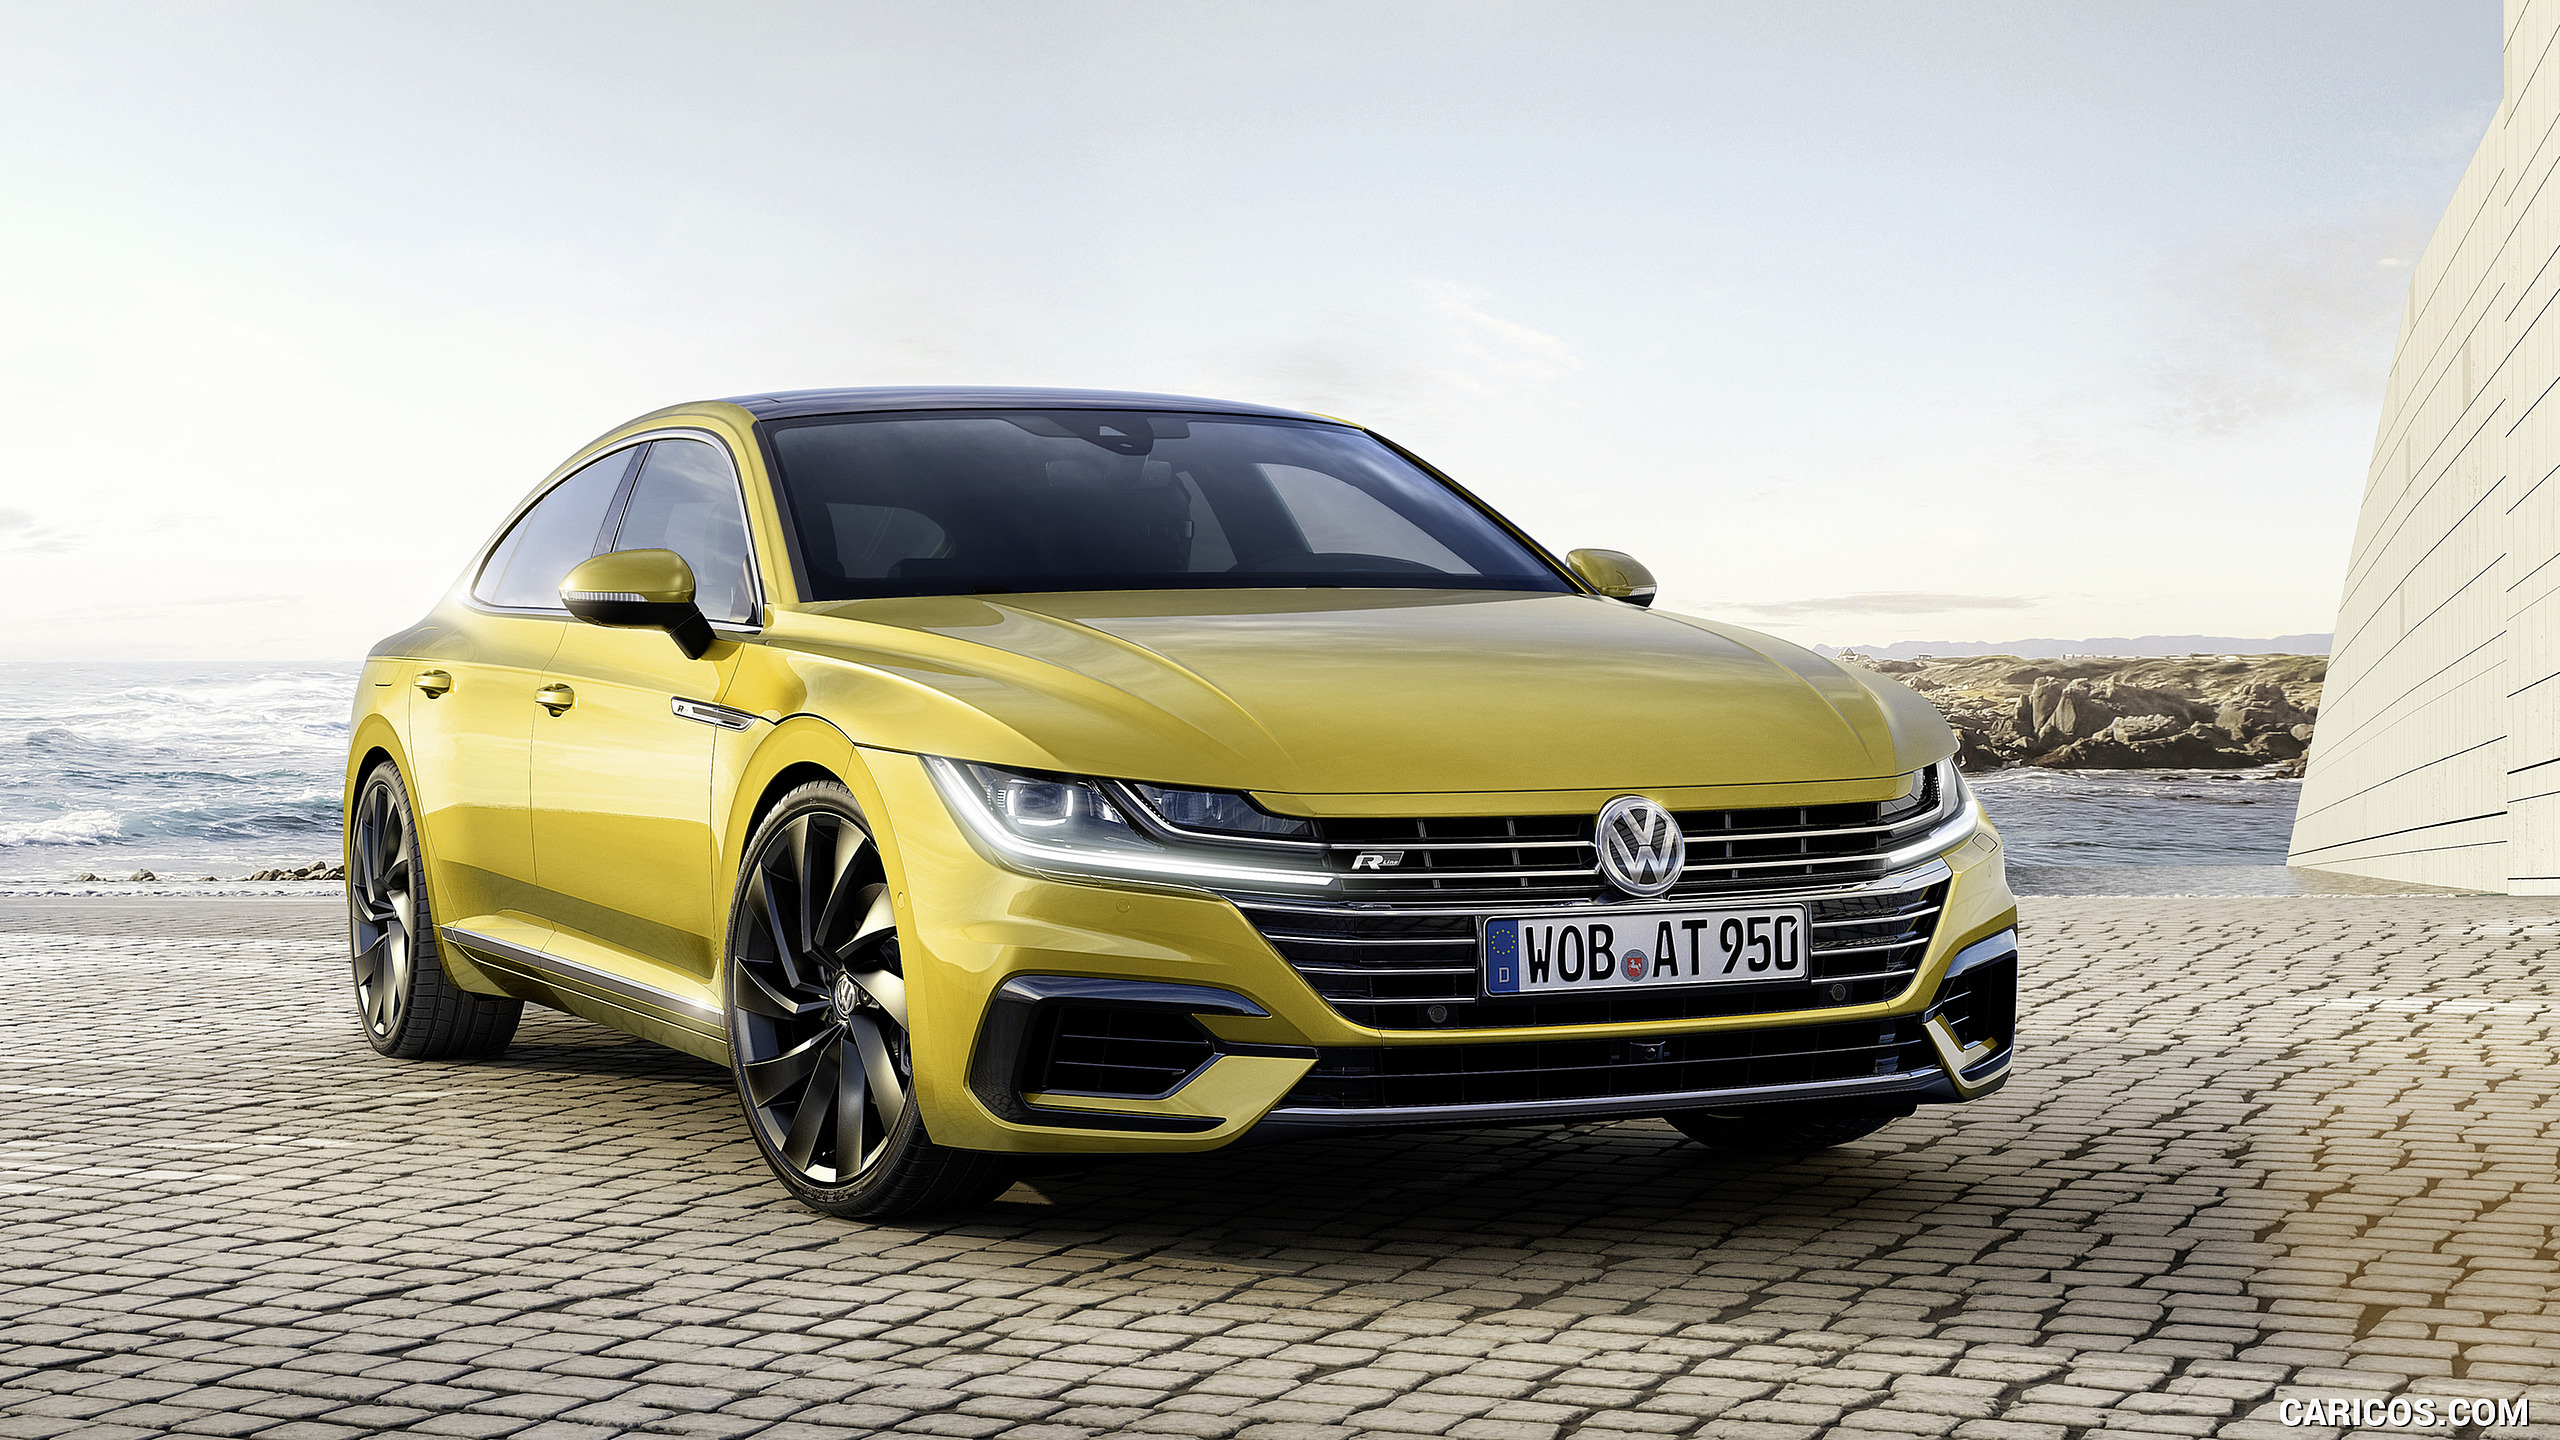 2560x1440 - Volkswagen Arteon Wallpapers 35